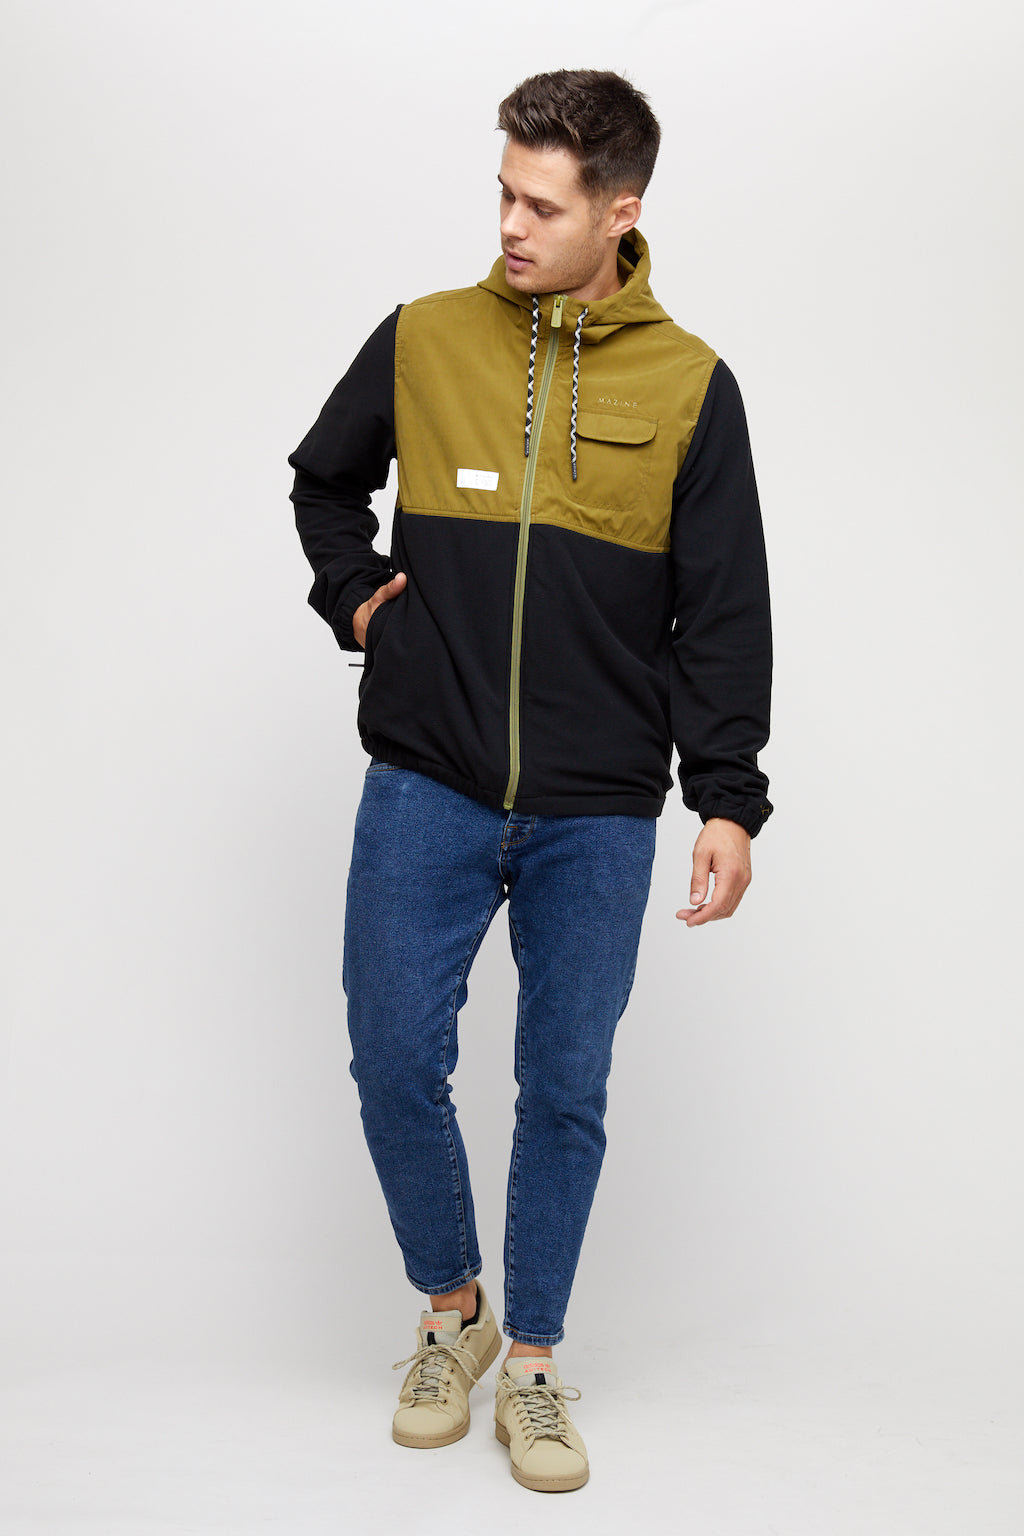 Dunoon Fleece Jacket